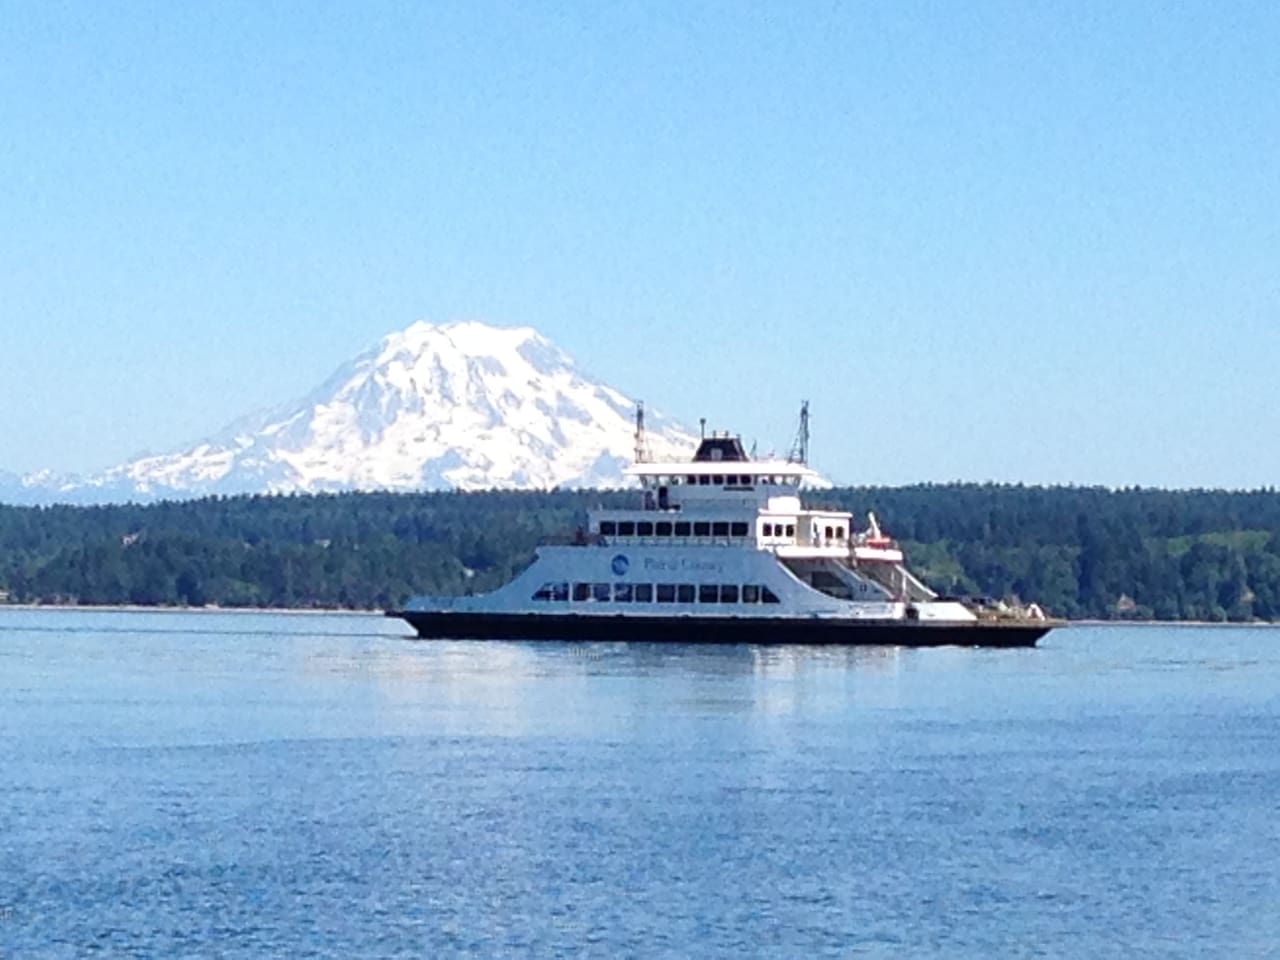 A scenic twenty minute ferry boat ride from historical Steilacoom brings you to Anderson Island.